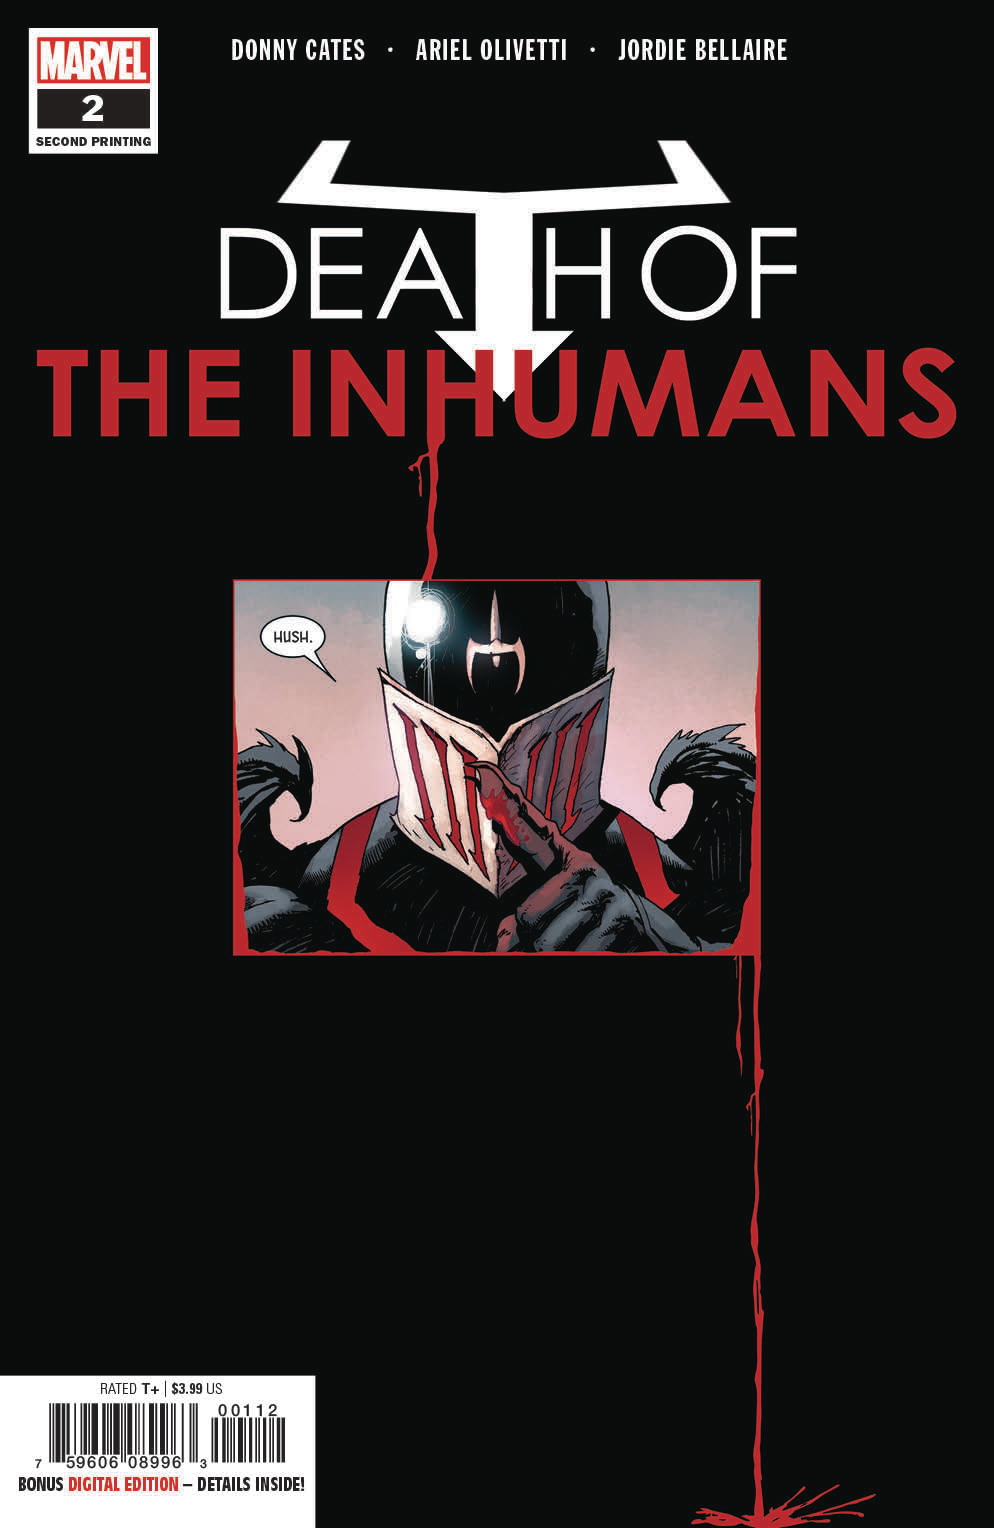 DEATH OF INHUMANS #2 (OF 5) 2ND PTG OLIVETTI VAR